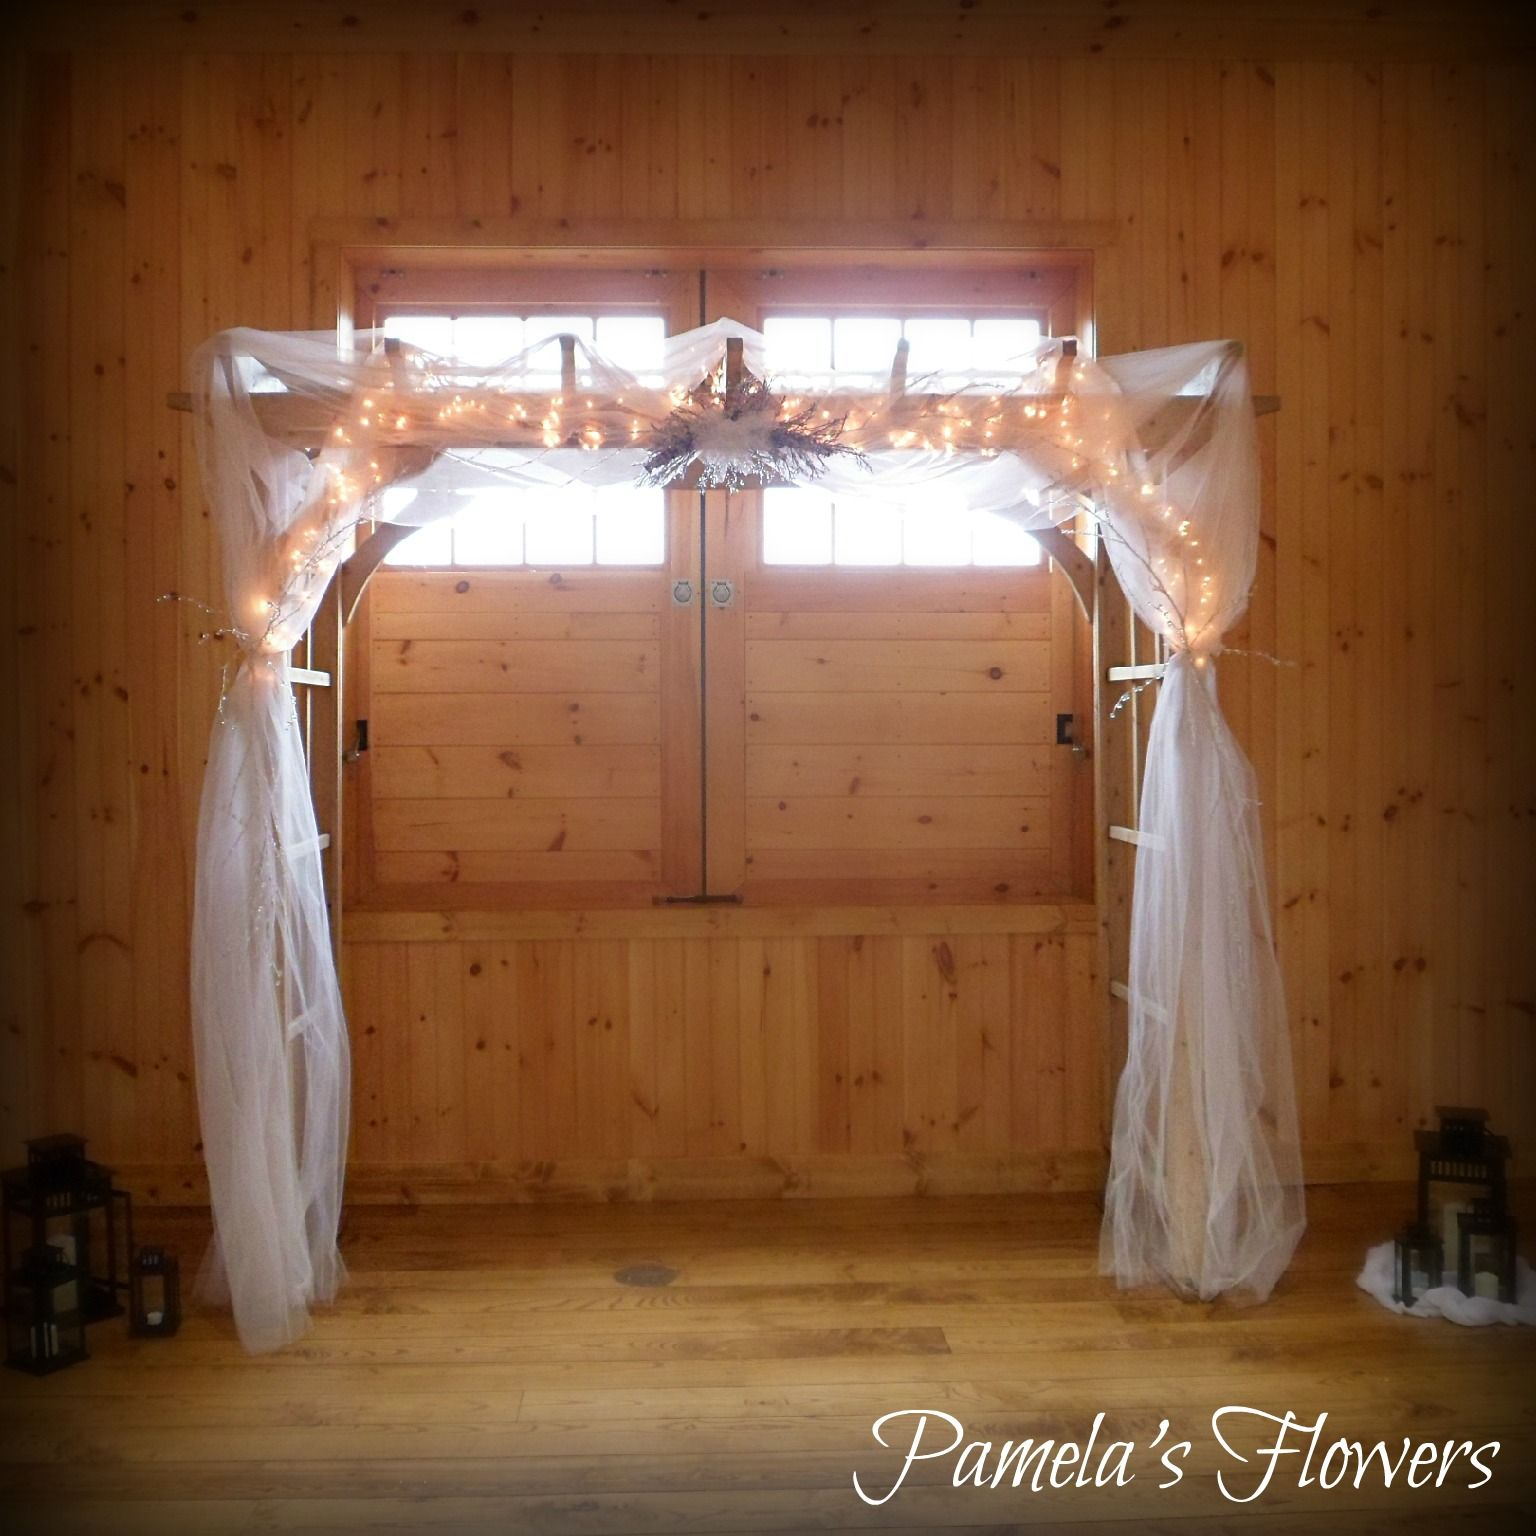 Archway Decorated by Pamela's Flowers ~ Archway at Ironstone Ranch decorated with white tulle, white lights, a swag of crystal branches, and beaded crystals and branches draped among the tulle. ~ Find us online at www.pamelasflowers.com